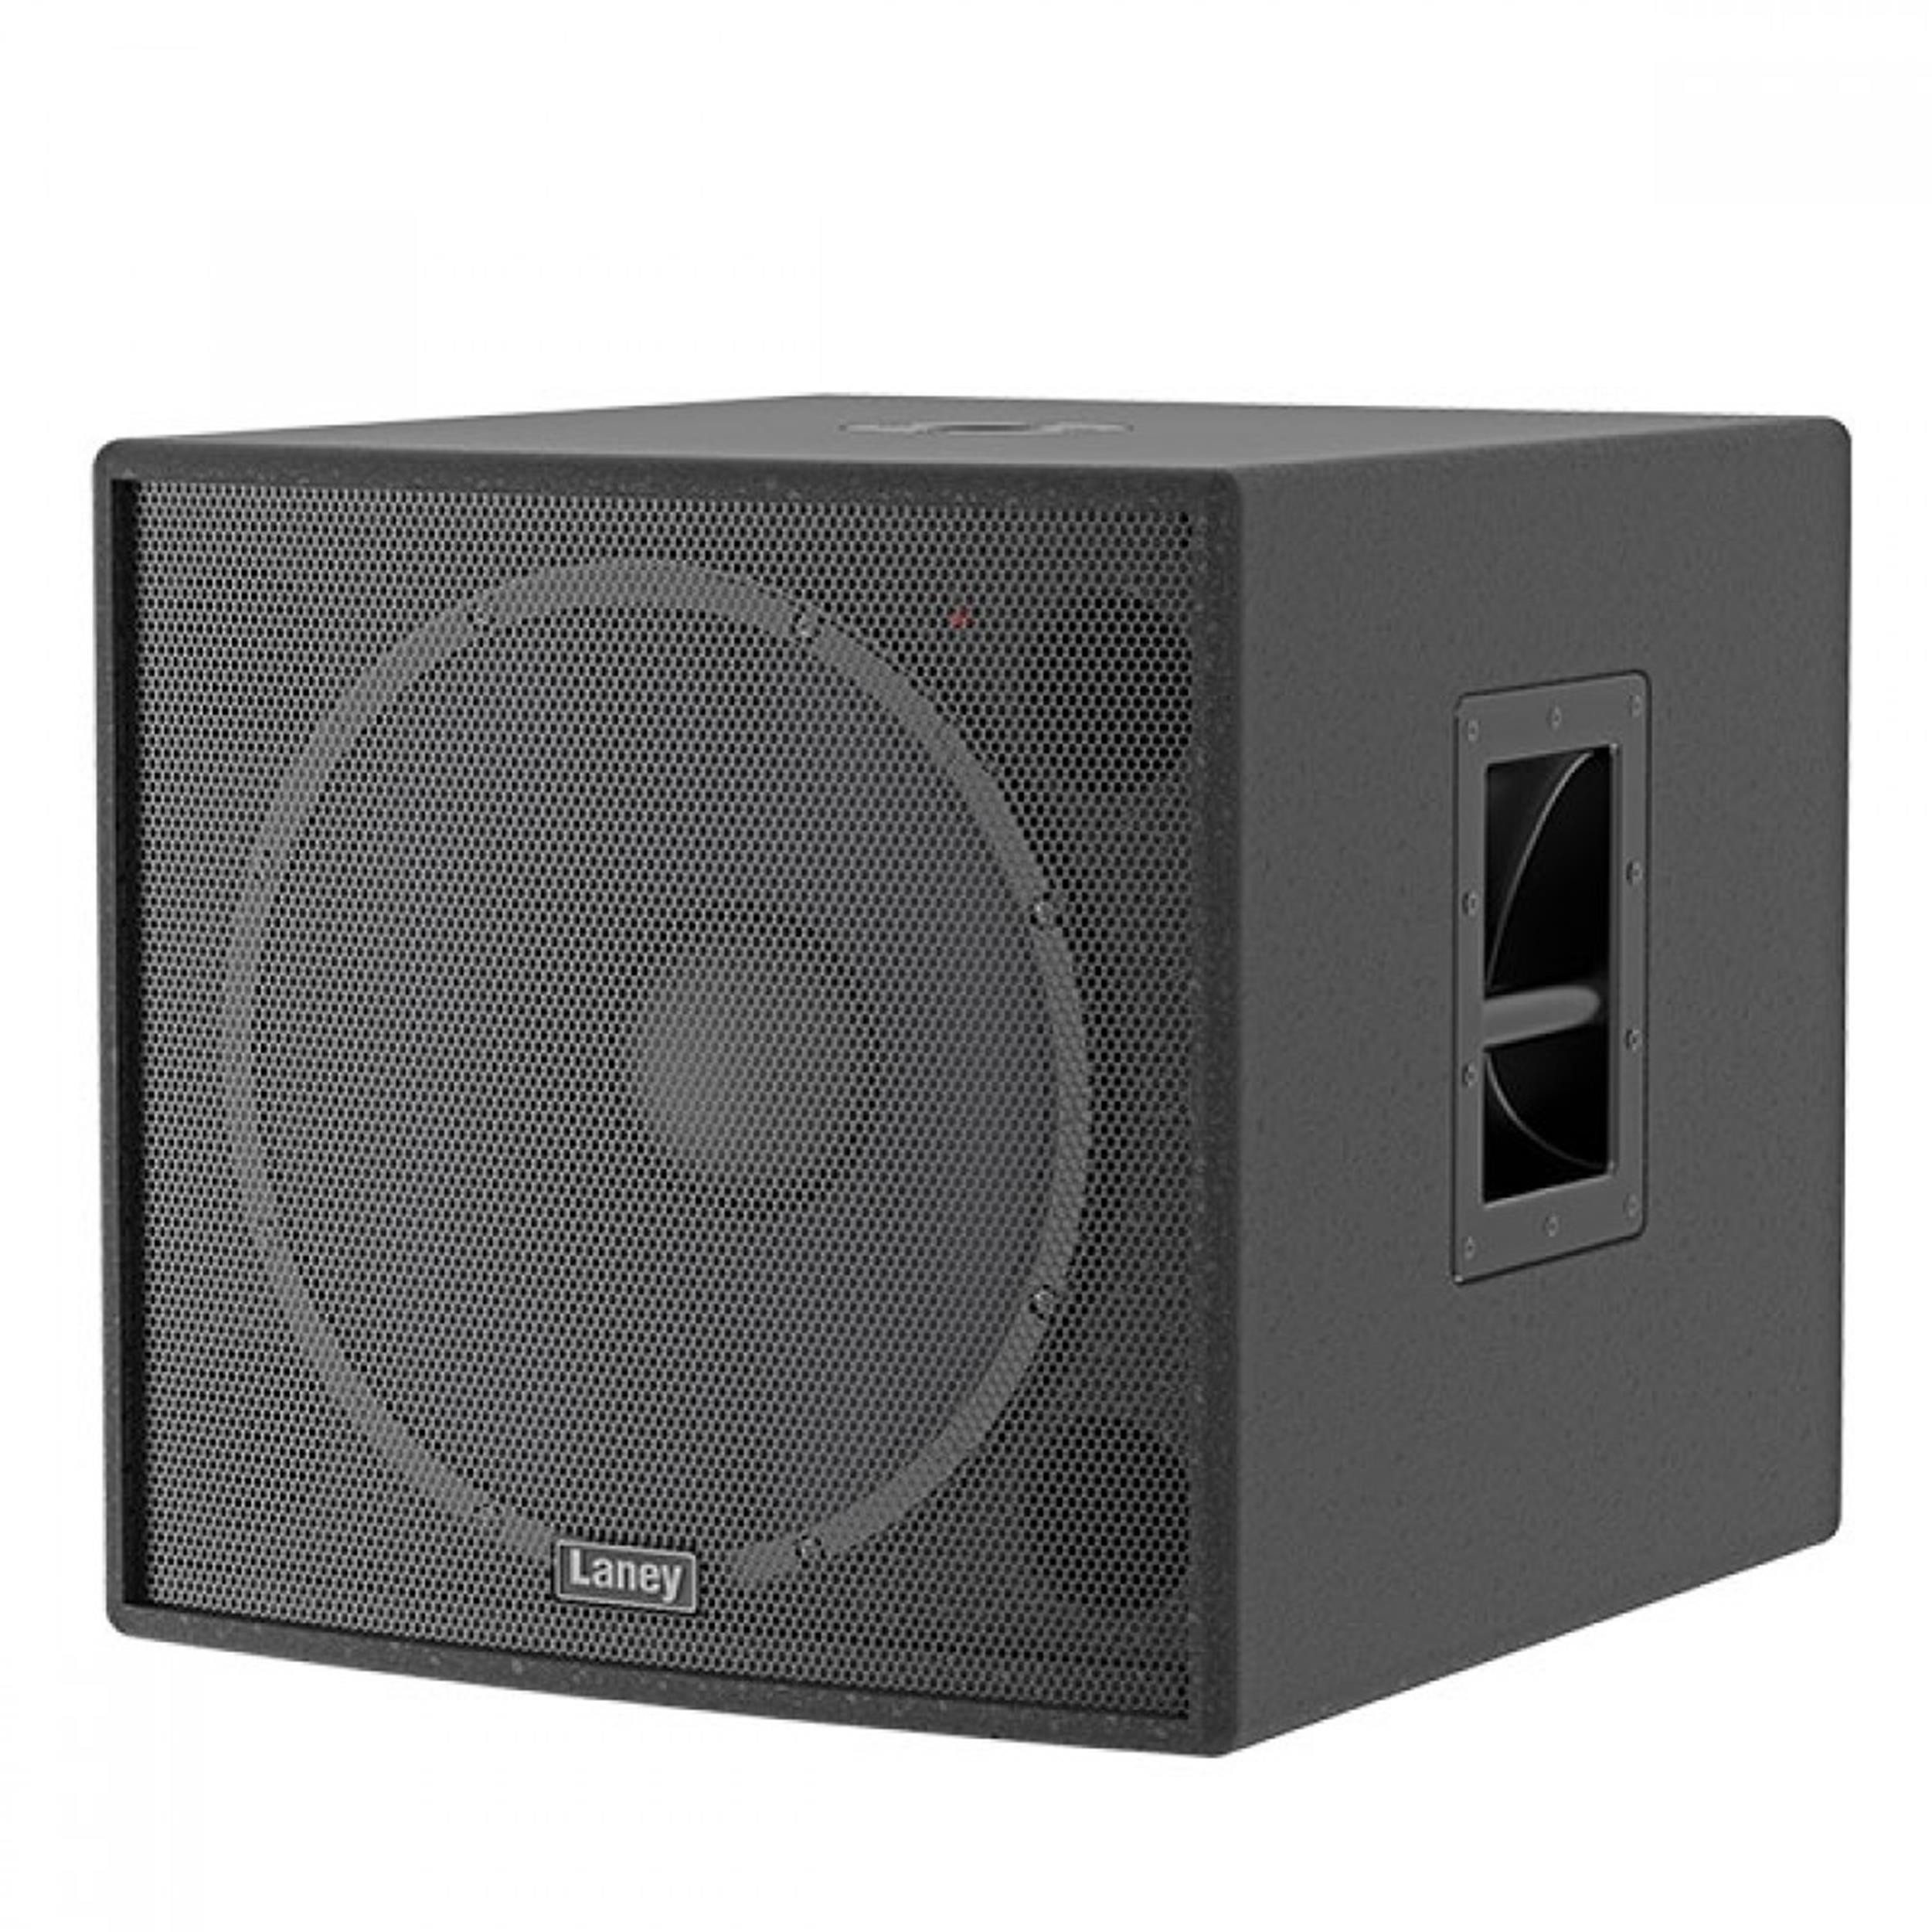 Laney AUDIOSUB - Sub Woofer Attivo 1x15 1200W - Dj Equipment Casse e Monitor - Subwoofer